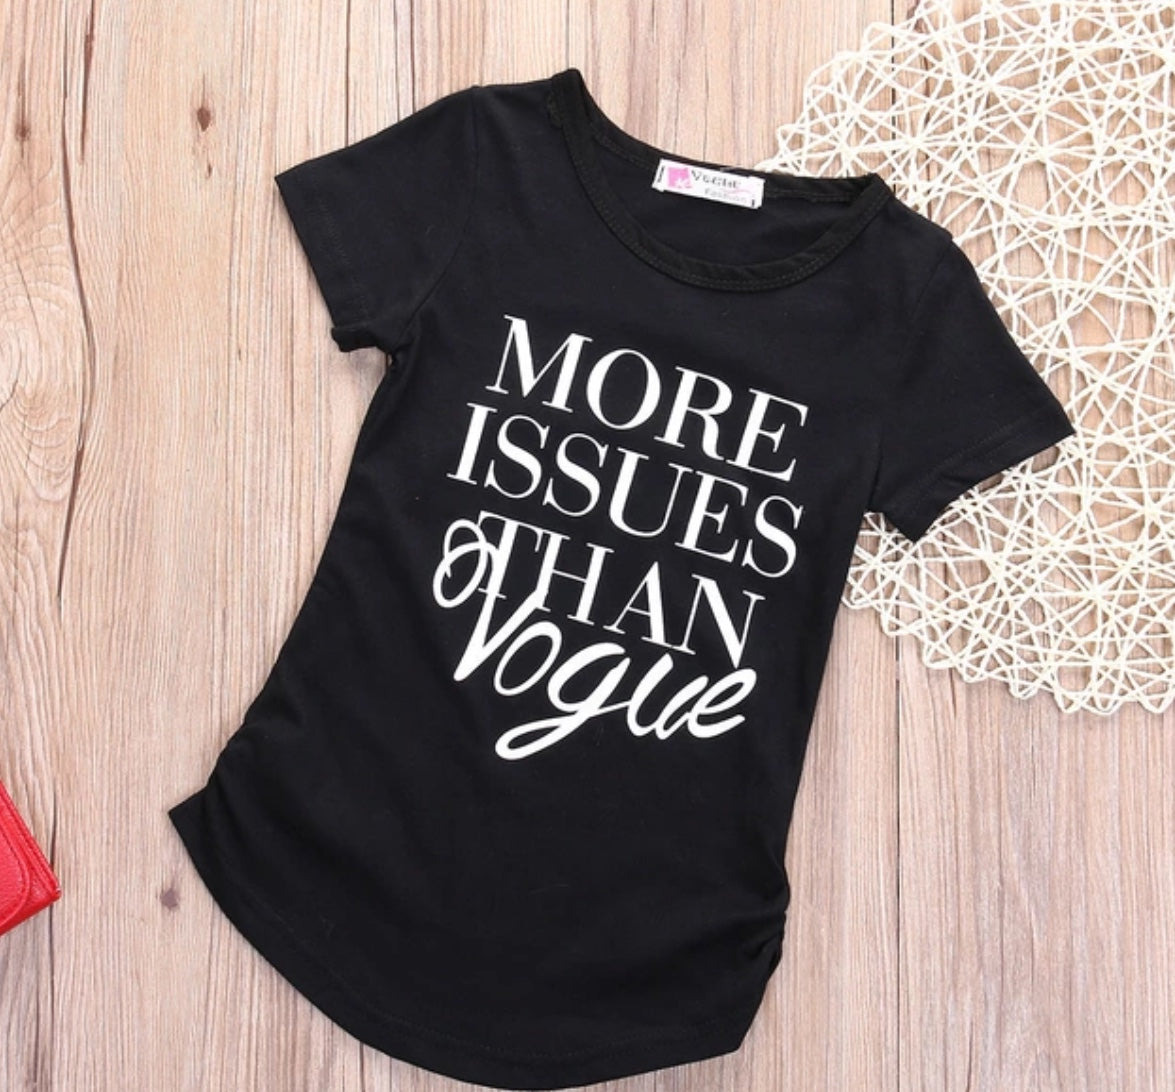 Short Sleeve Girls More Issue Than Vogue Cotton T Shirt Tops Clothes - bump, baby and beyond